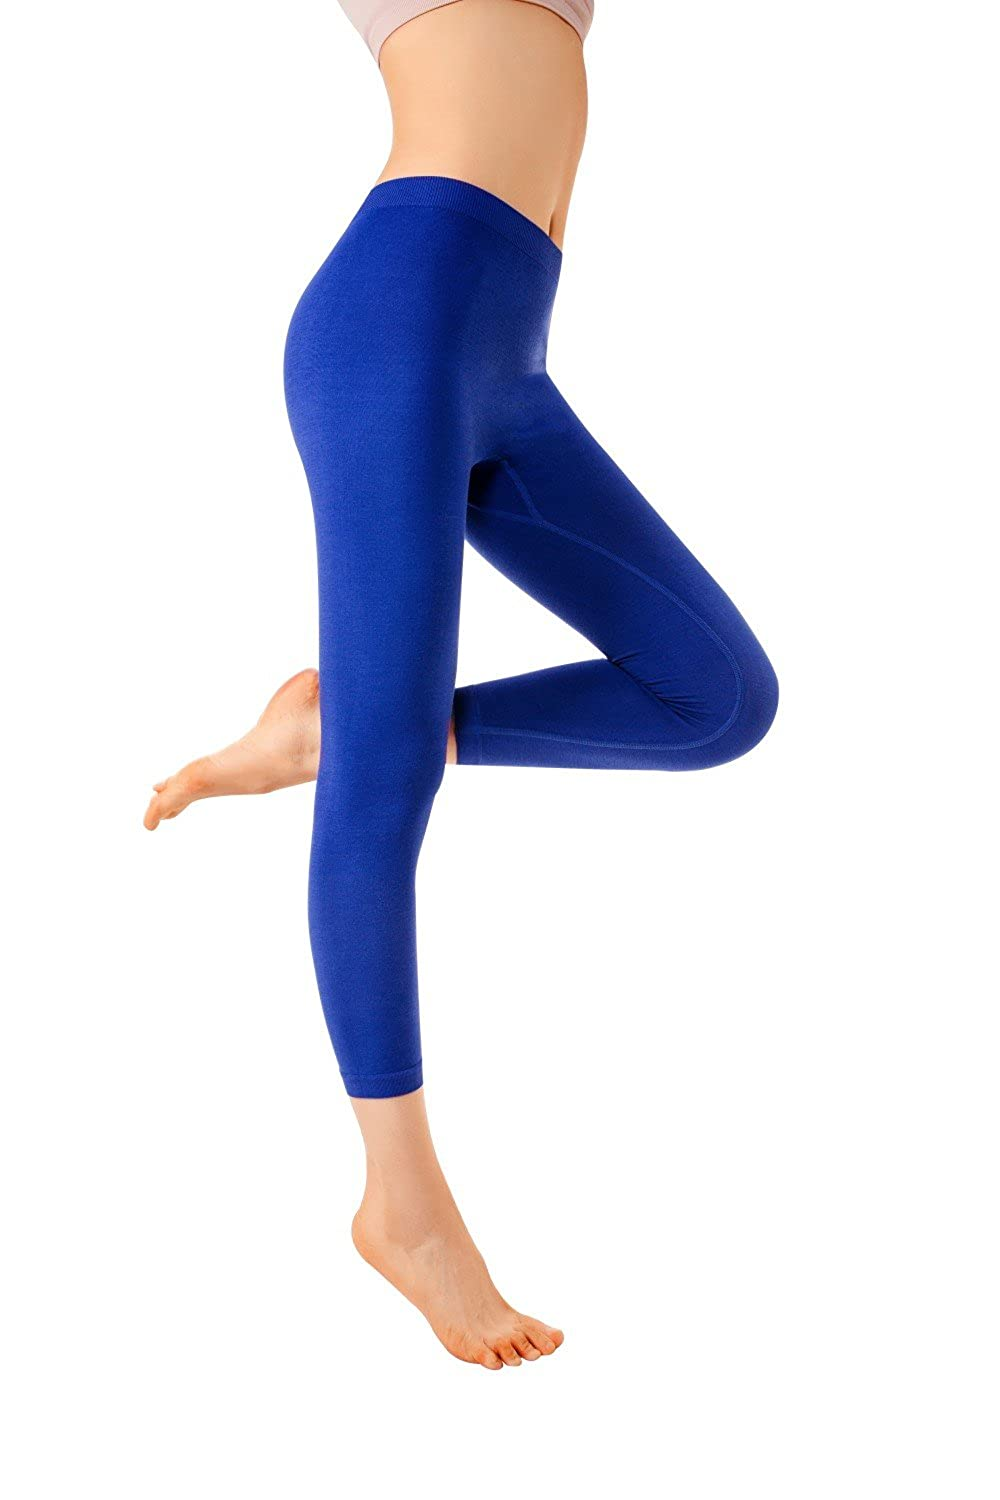 MD Shapewear Yoga Pant and Sports Leggings for Women Tummy Hips and Thighs Body Shaper Modal